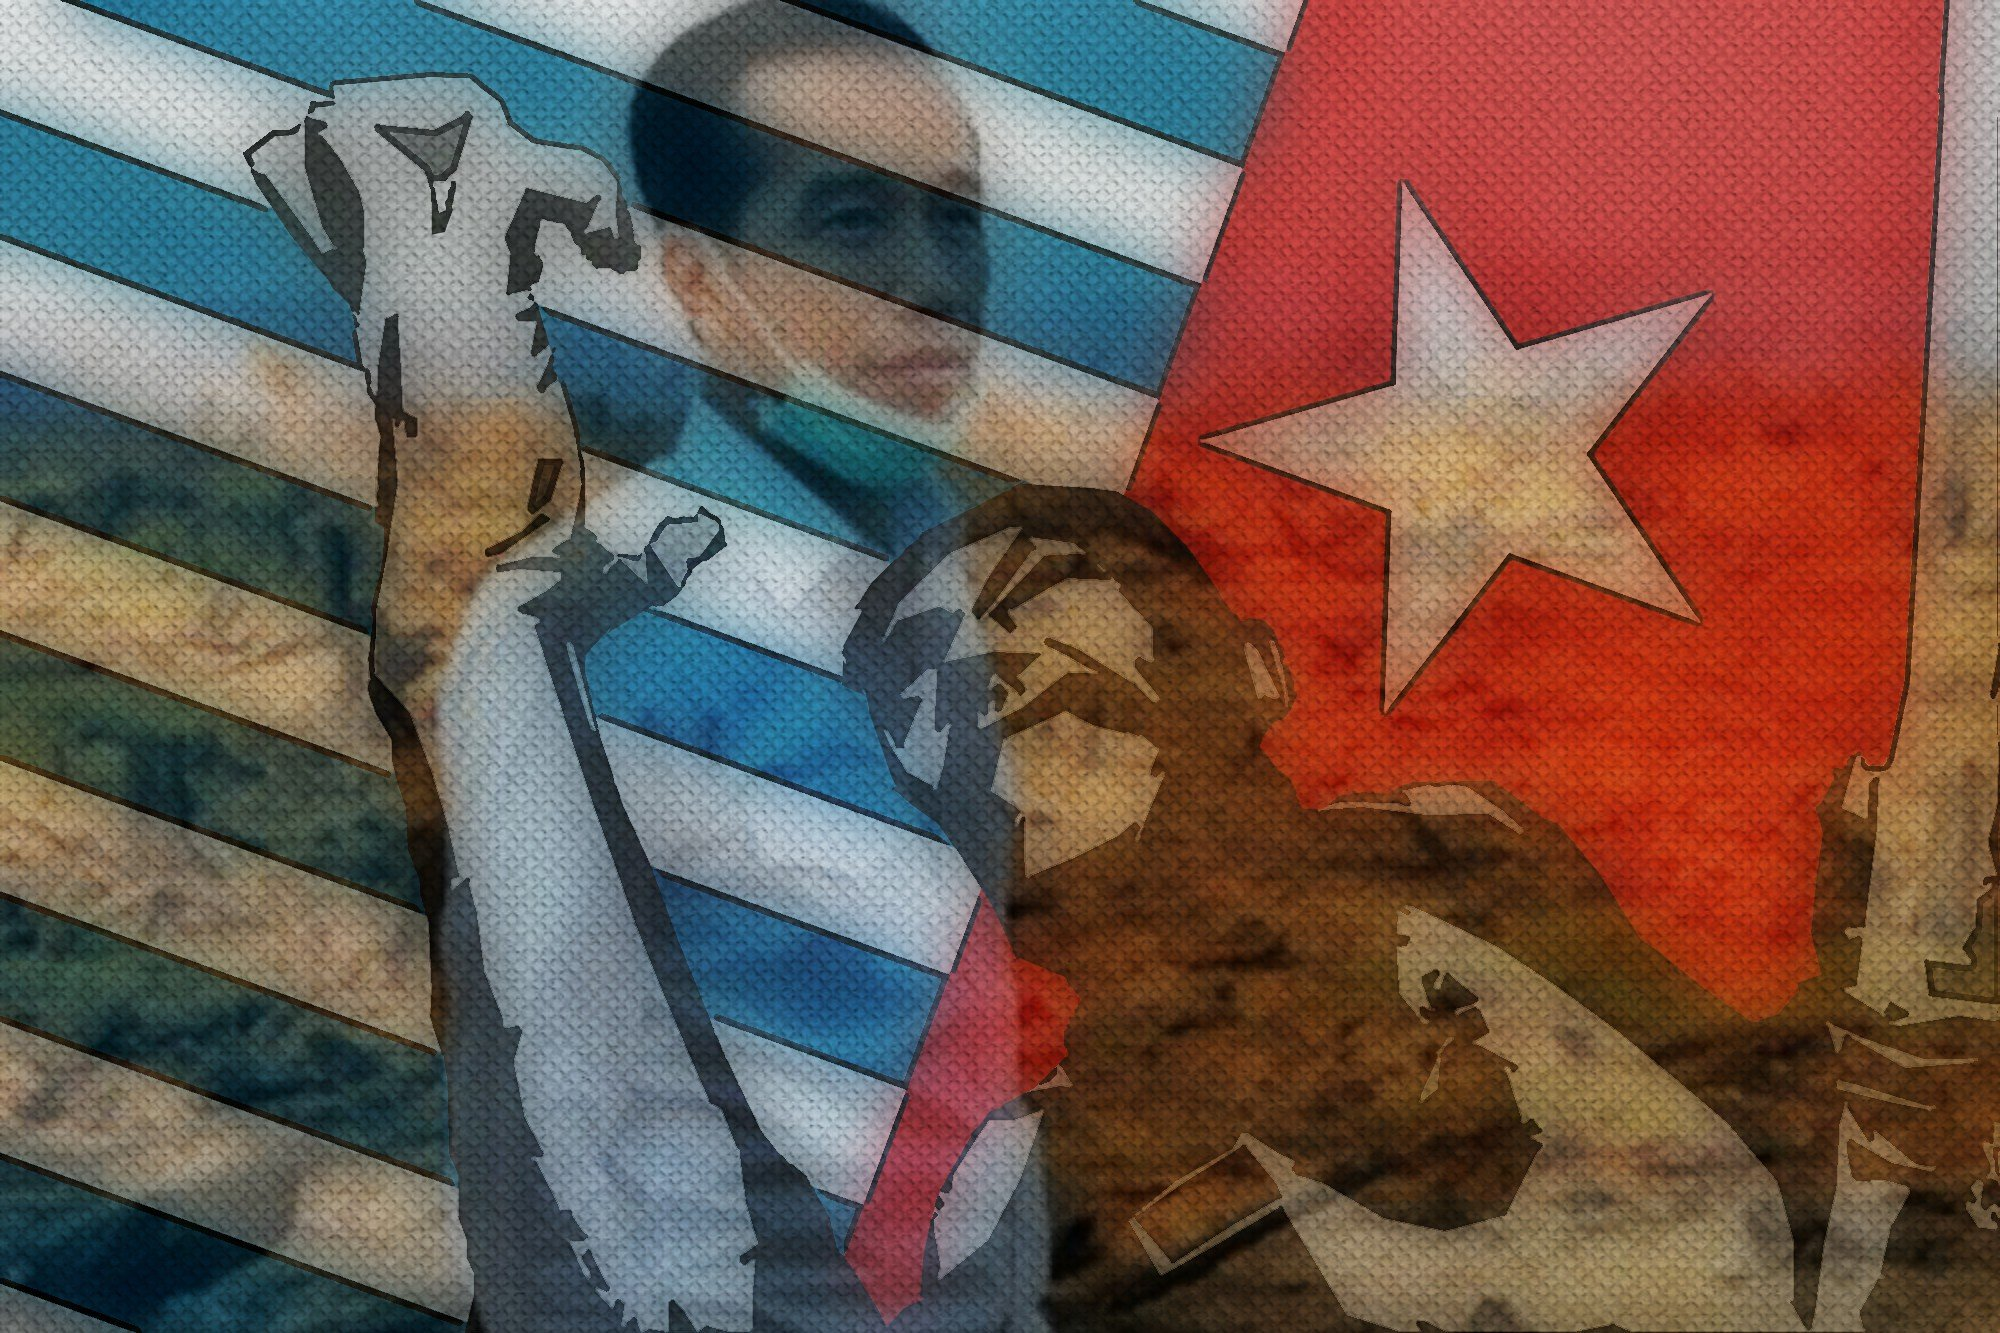 Indonesia: Hundreds Arrested in West Papua Demonstrations